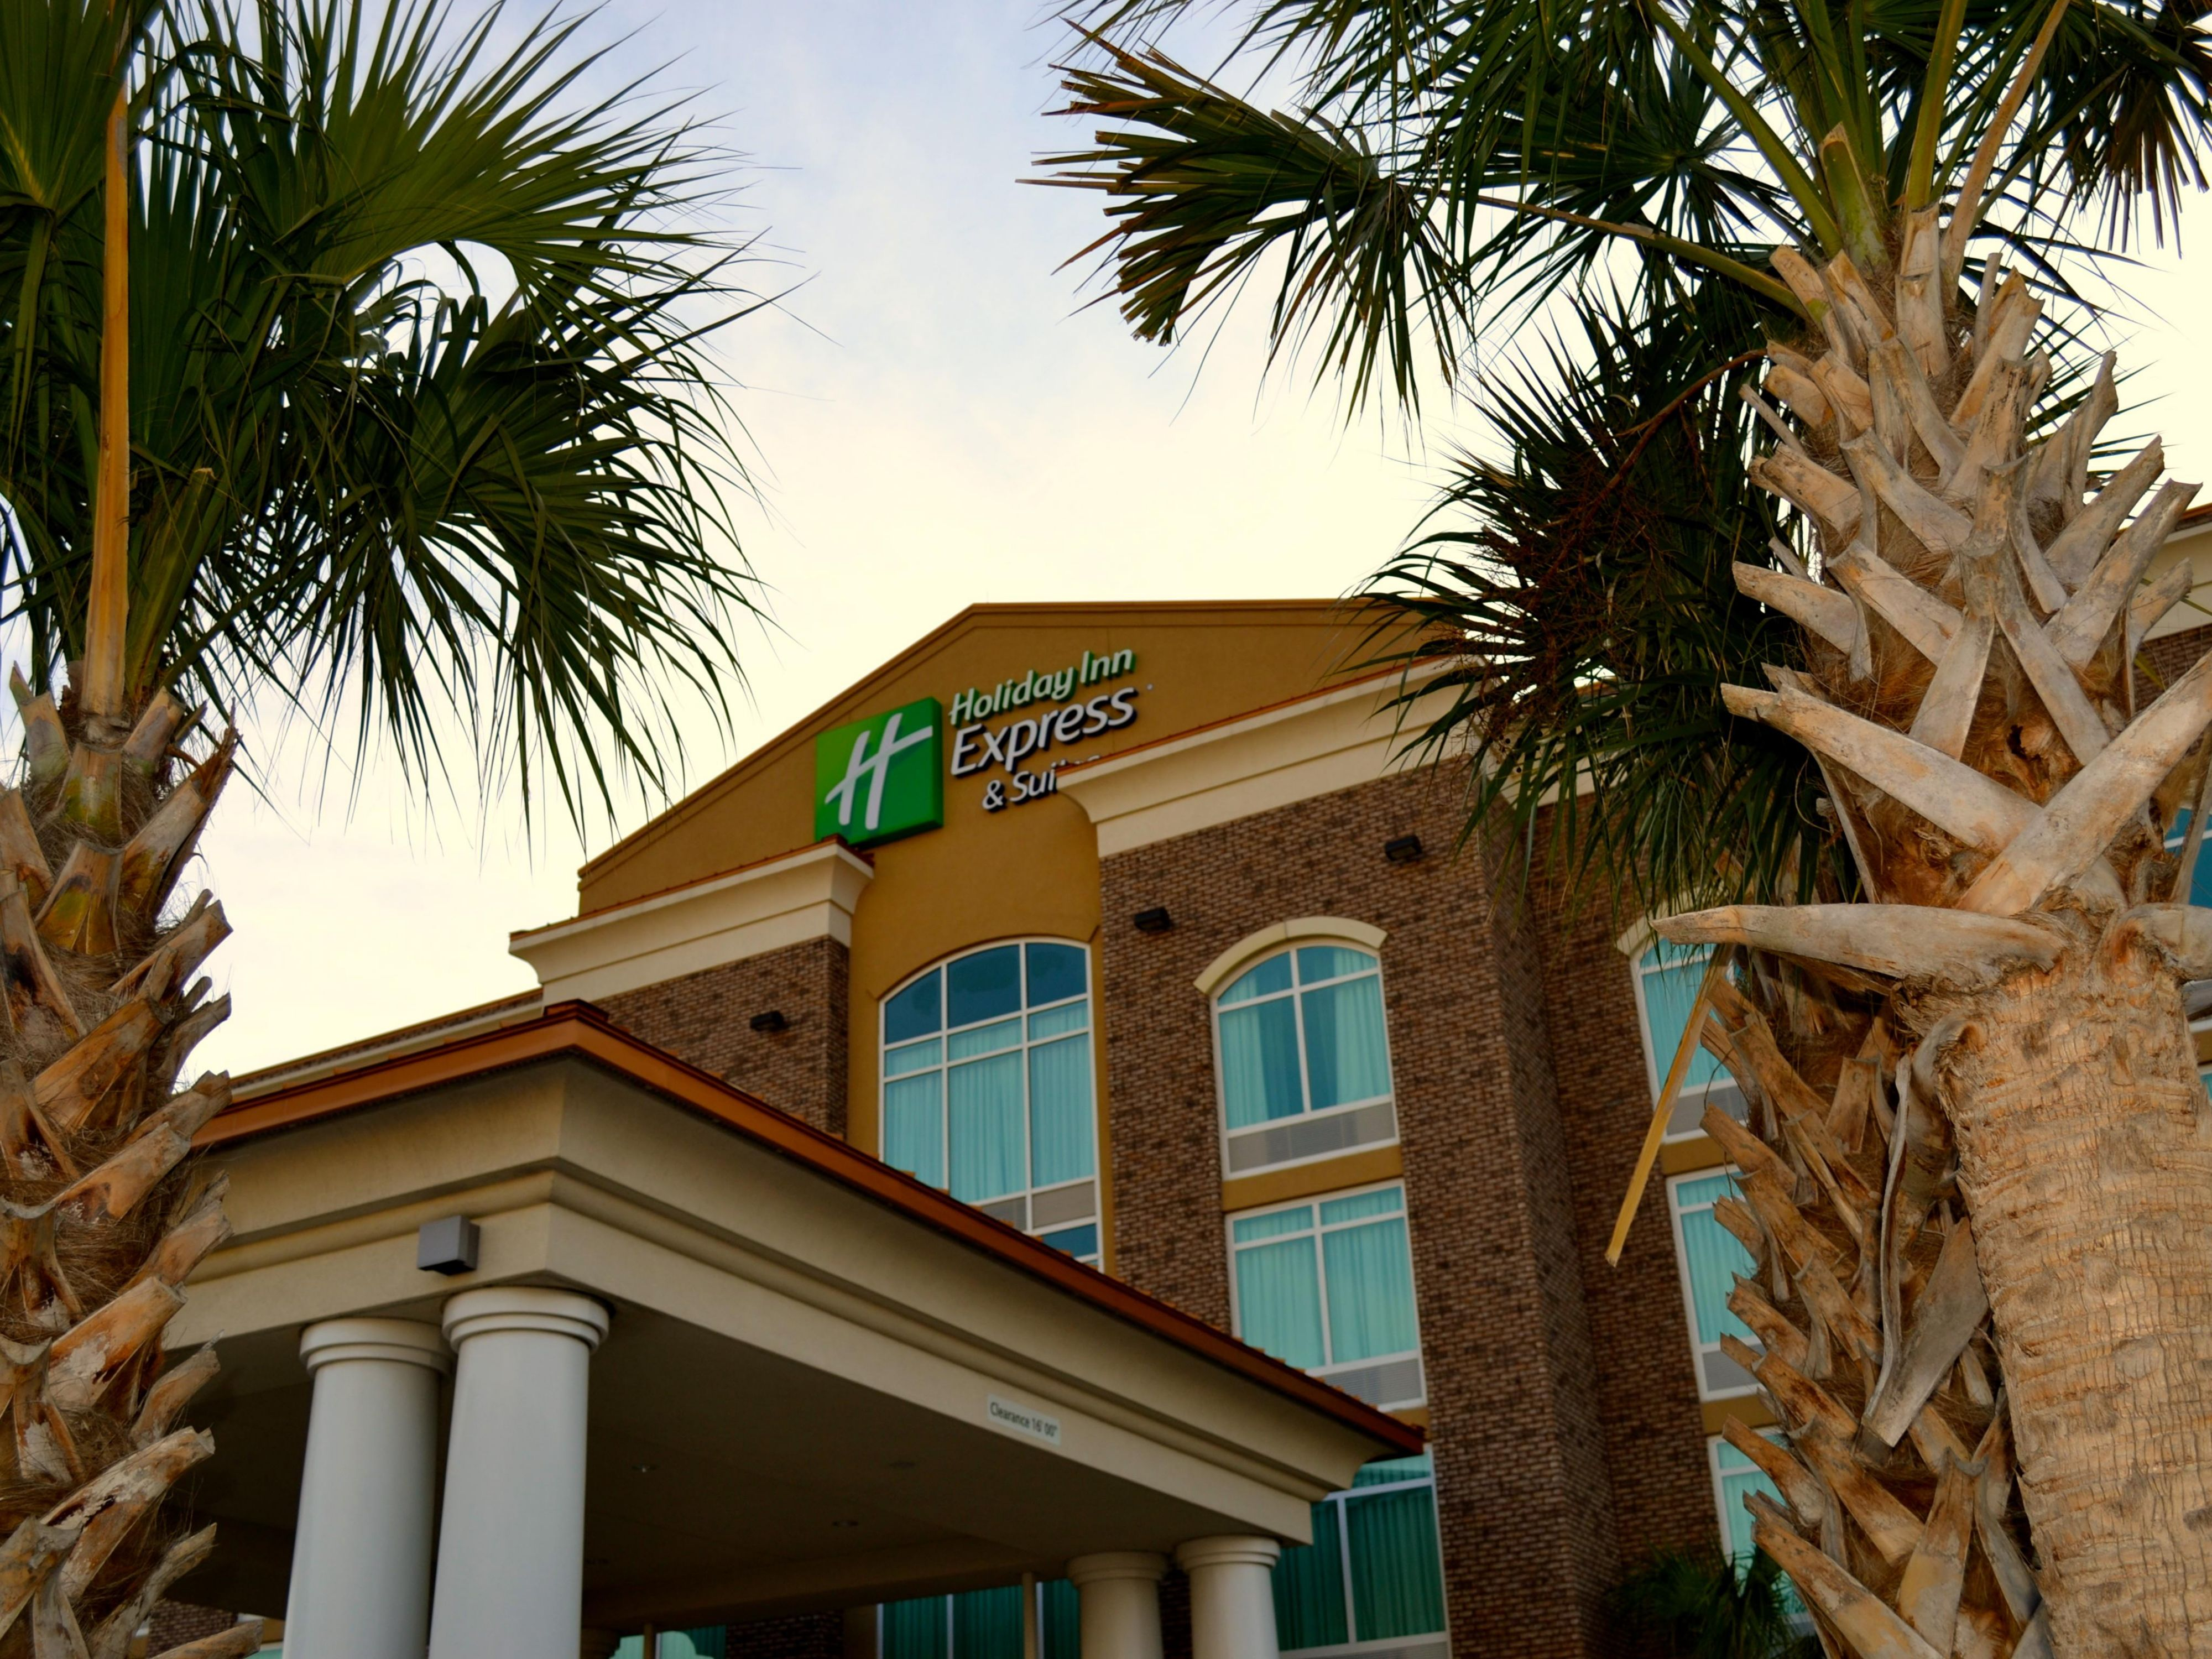 Holiday Inn Express & Suites Charleston Arpt-Conv Ctr Area Hotel by IHG